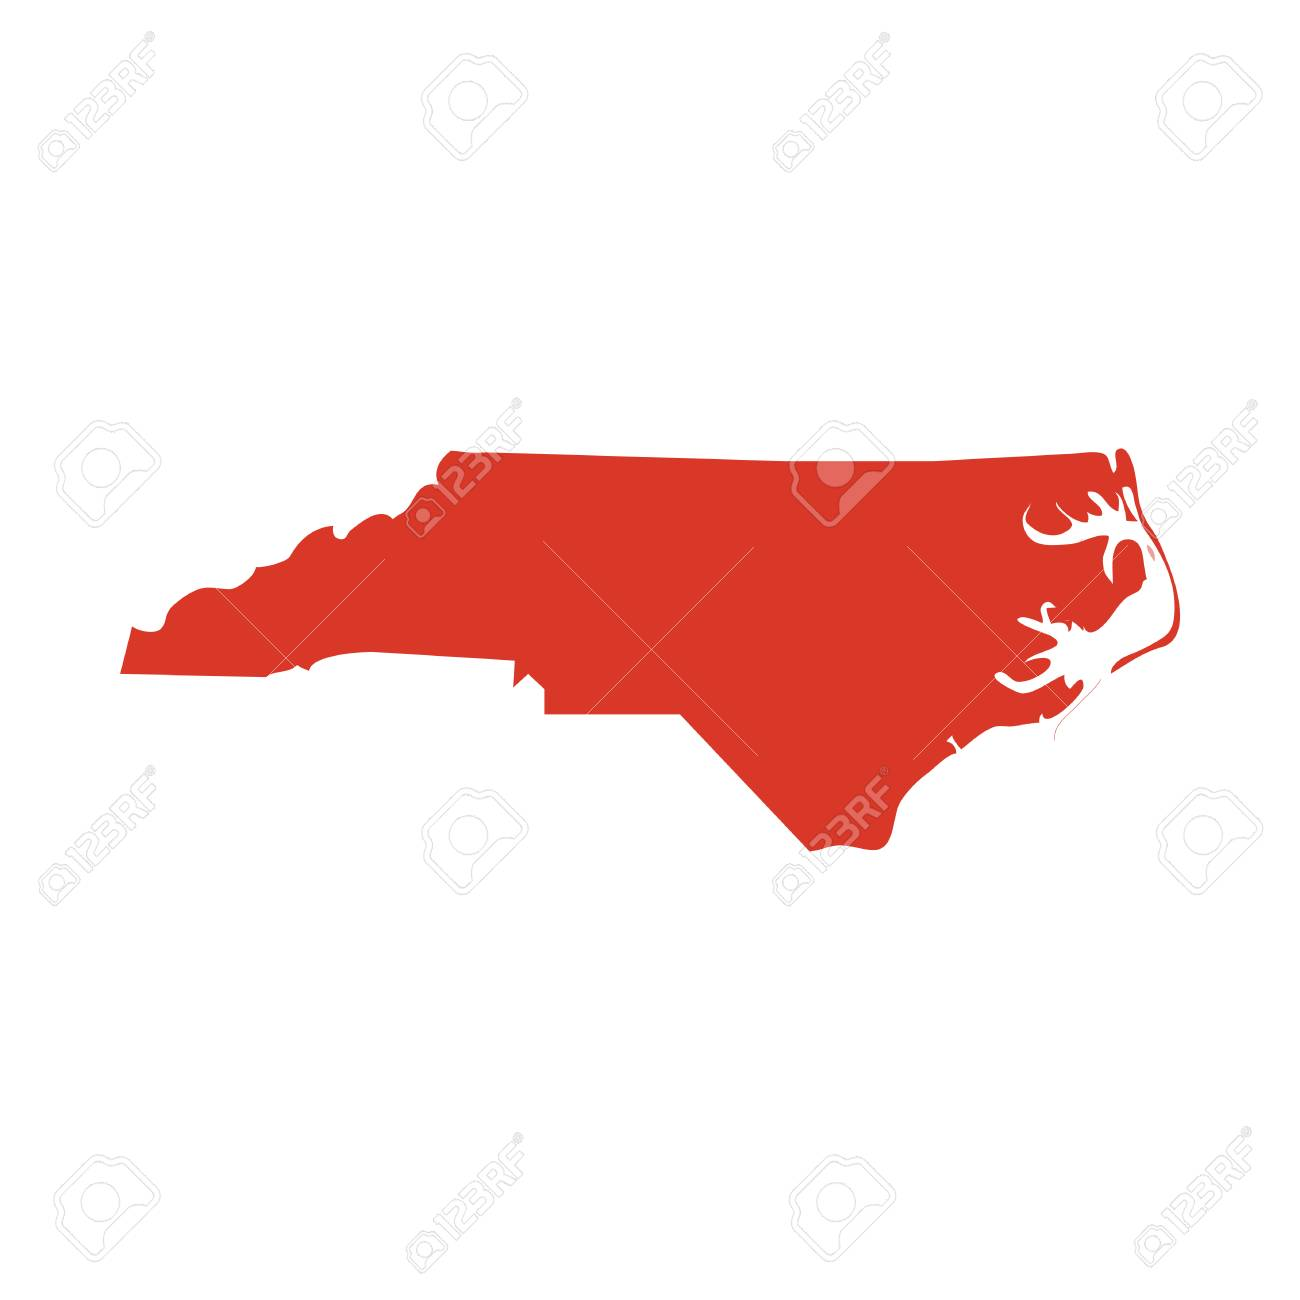 State Of North Carolina Vector Red Map Silhouette. NC State Shape ...